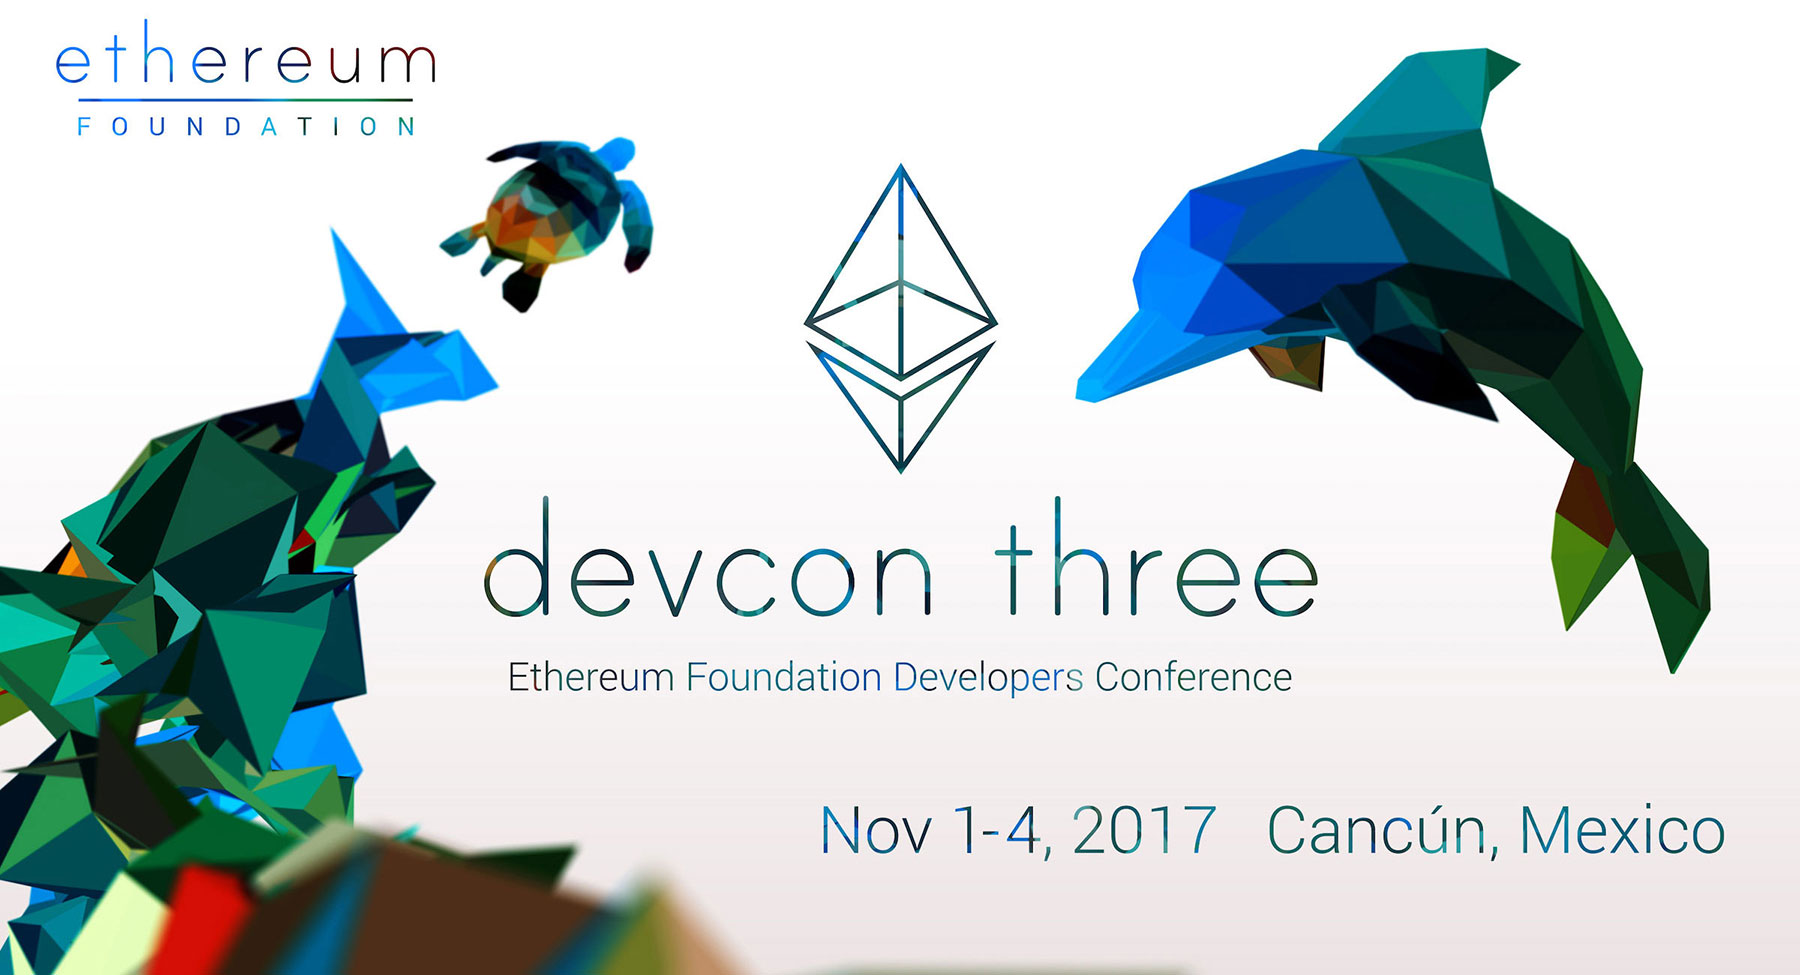 Ethereum, Ethereum Developer Conference, DEVCON, Ethereum DEVCON